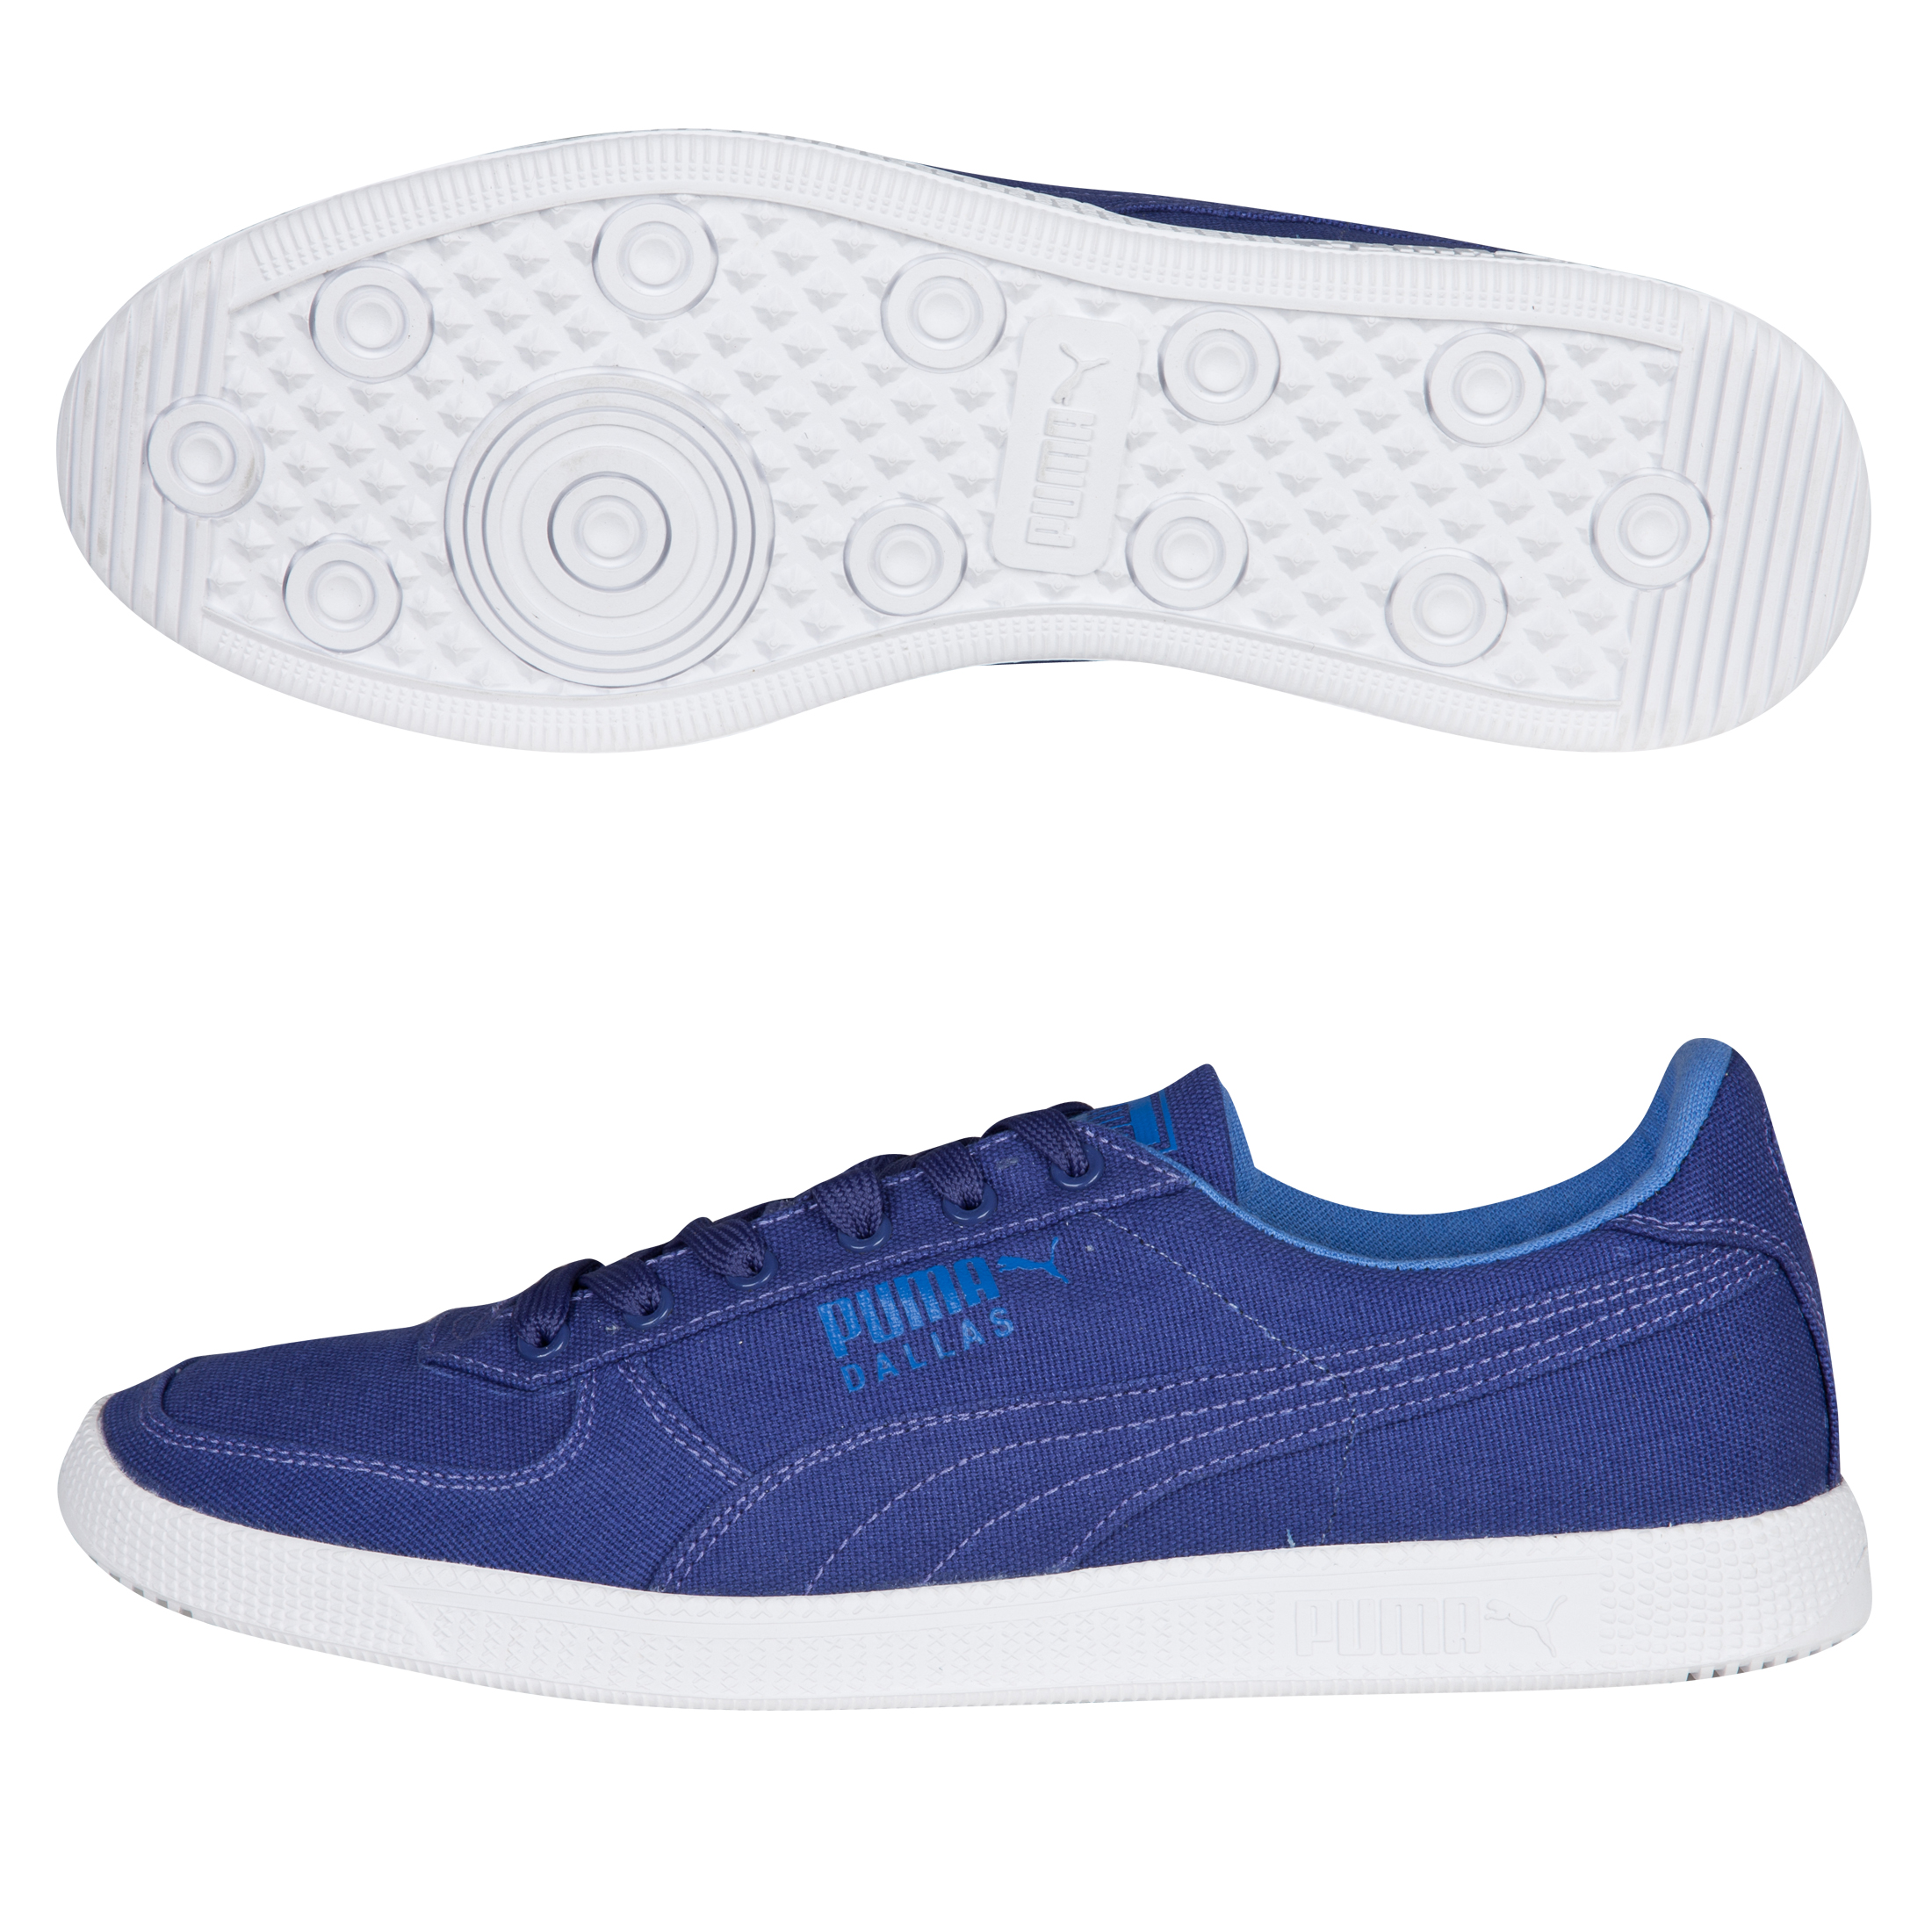 Puma Dallas Canvas Trainers - Navy Blue/Ceramic Green/White